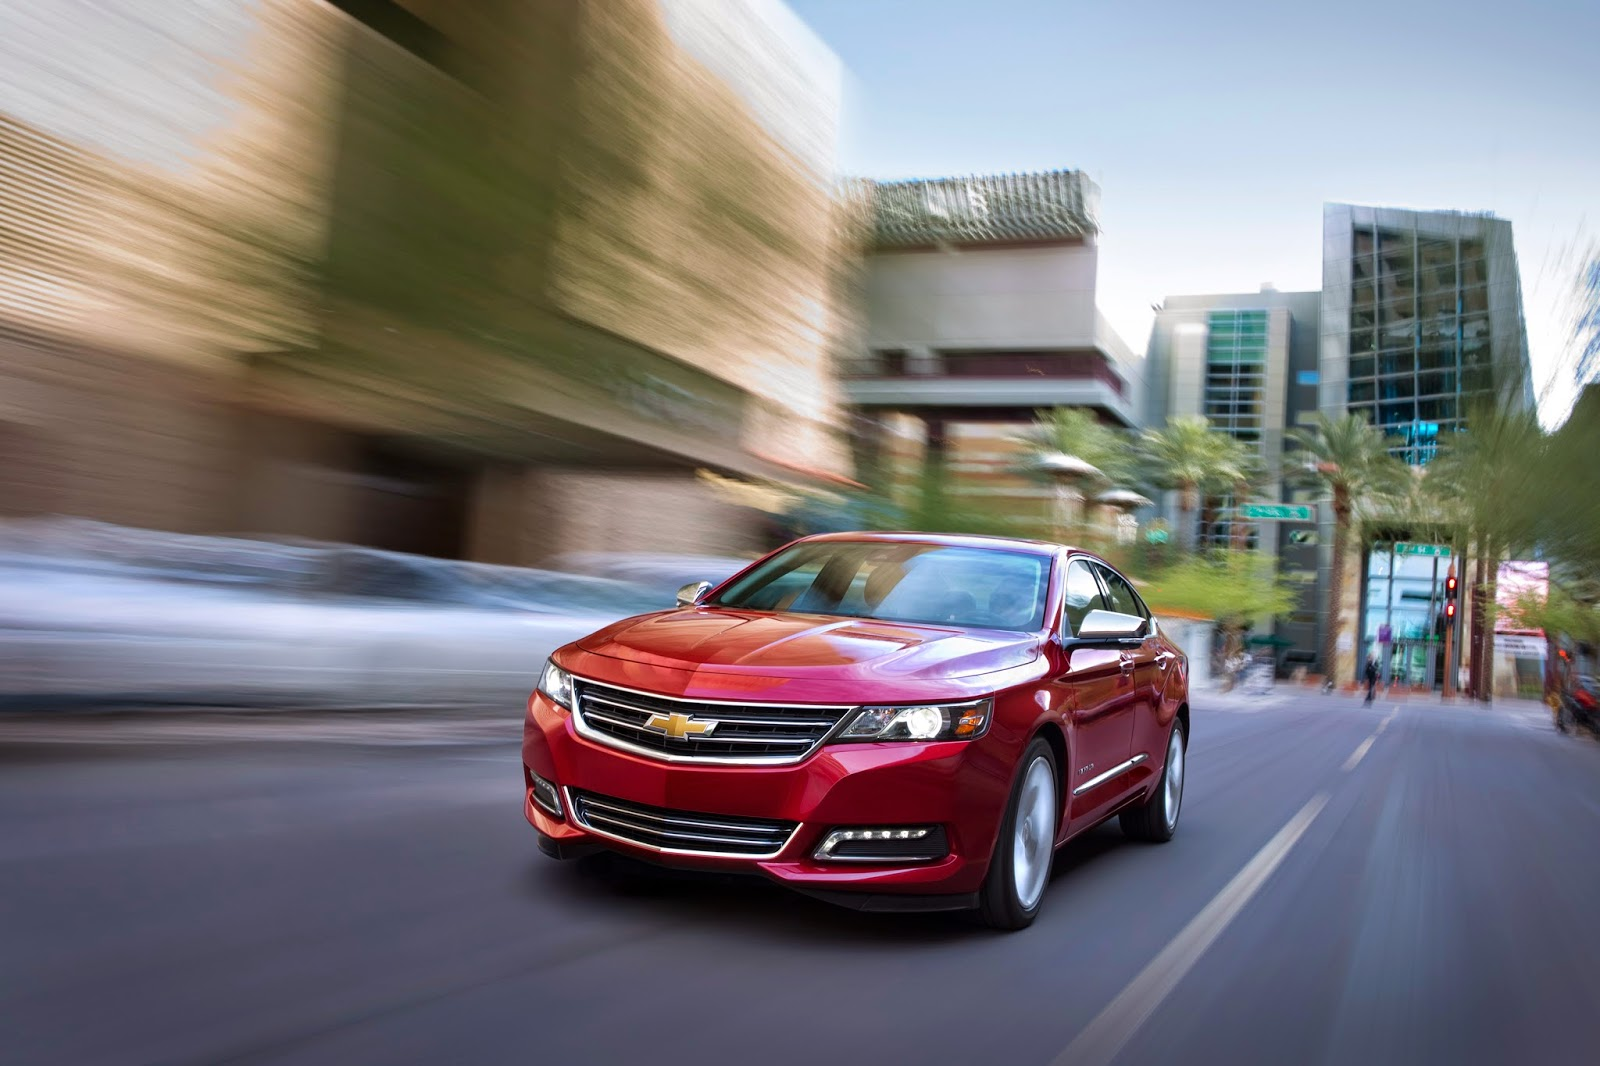 2014 Chevy Impala Named Most Comfortable Car Under $30,000